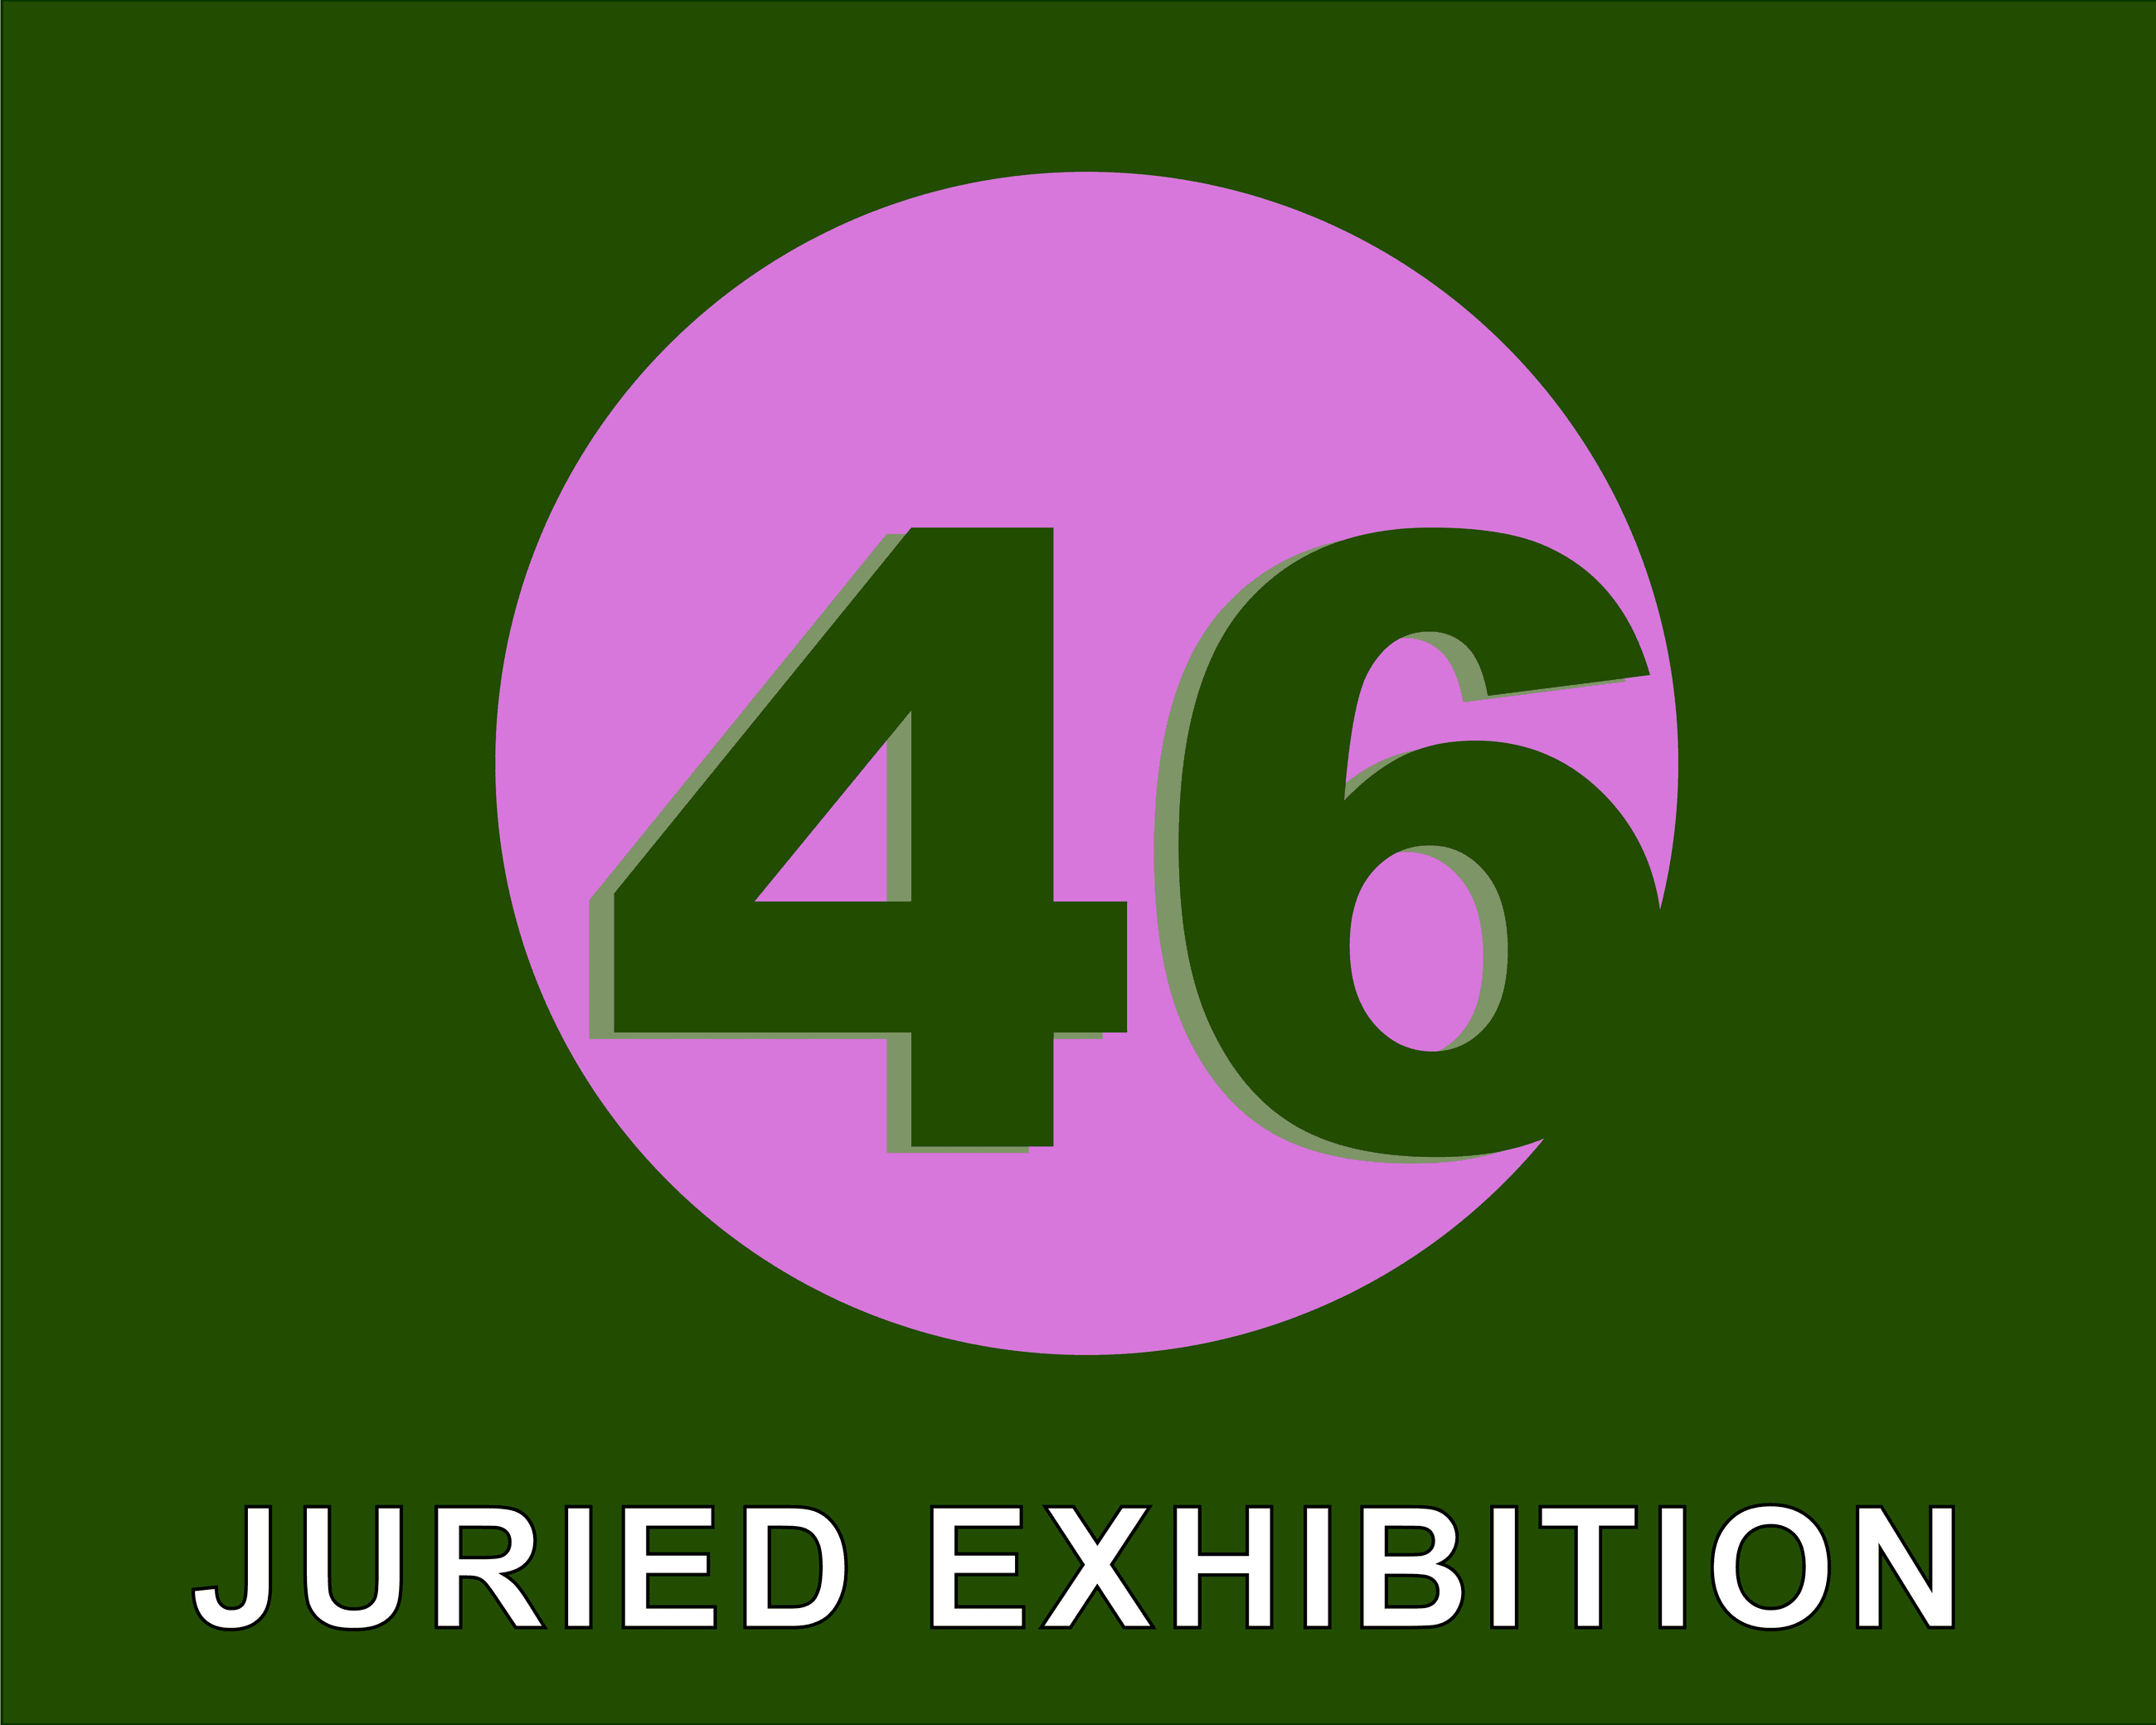 Juried Exhibition 46